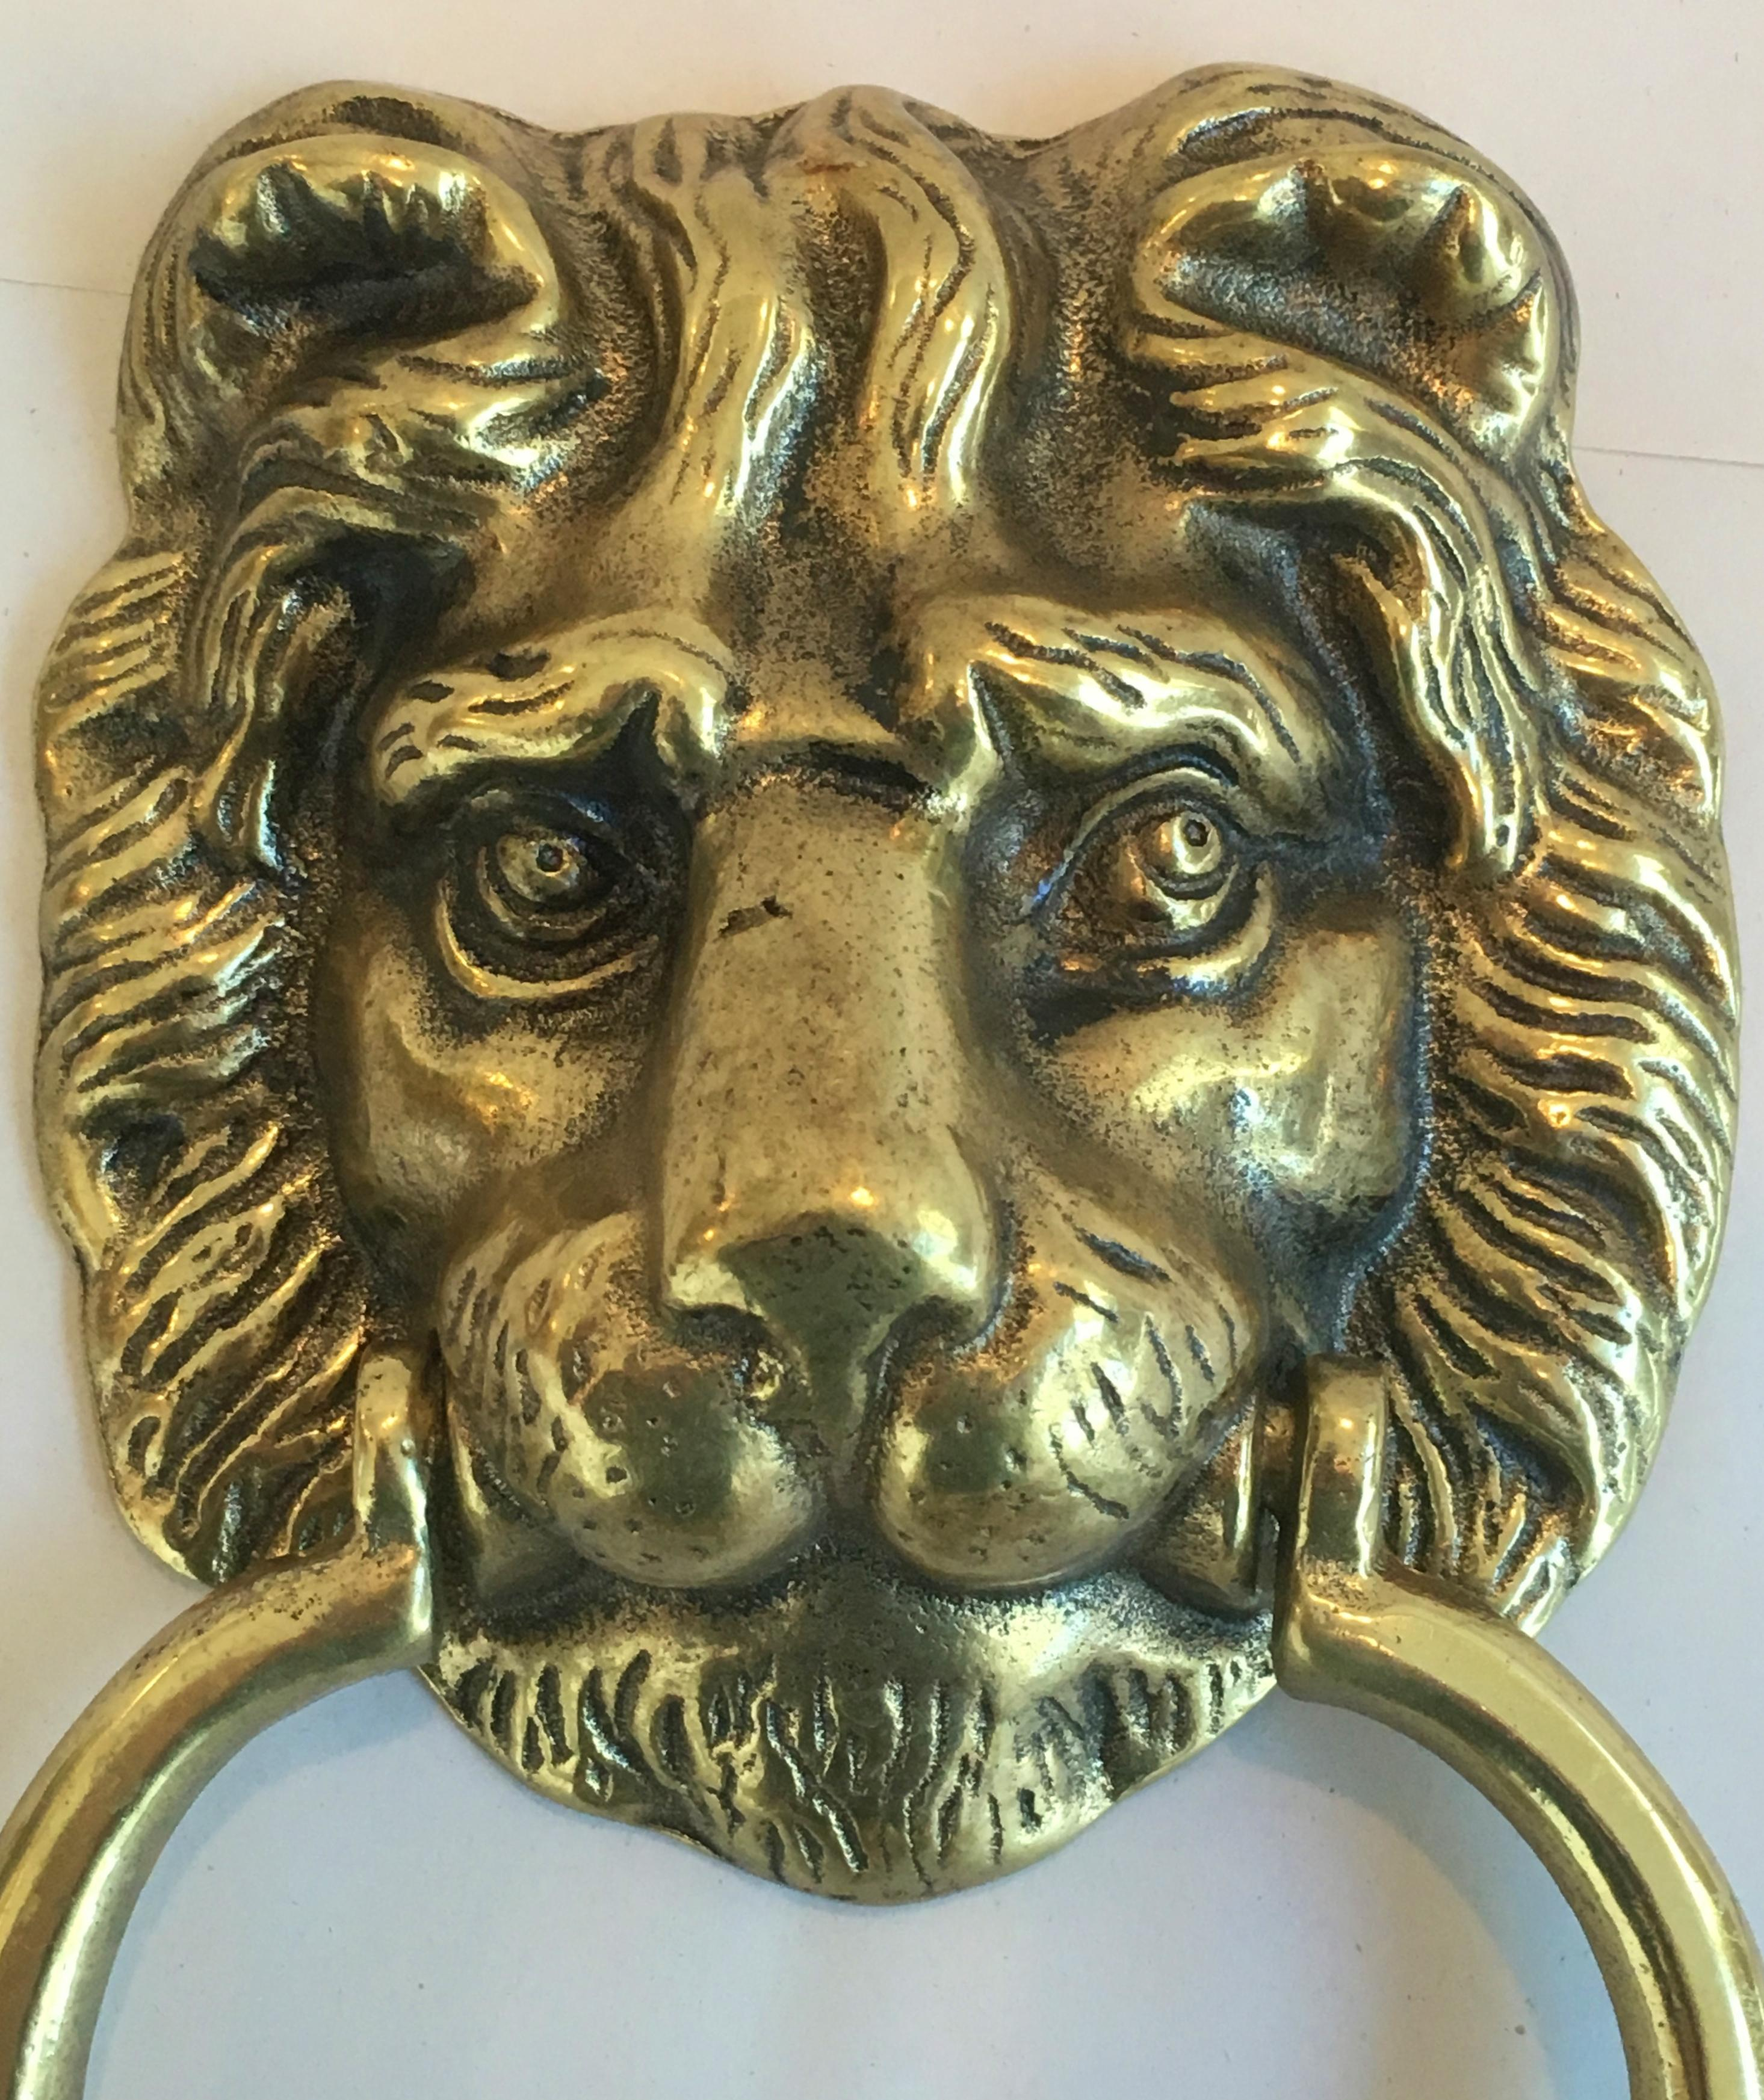 Vintage English Brass Lion Door Knocker With Strike Button   Image 4 Of 9